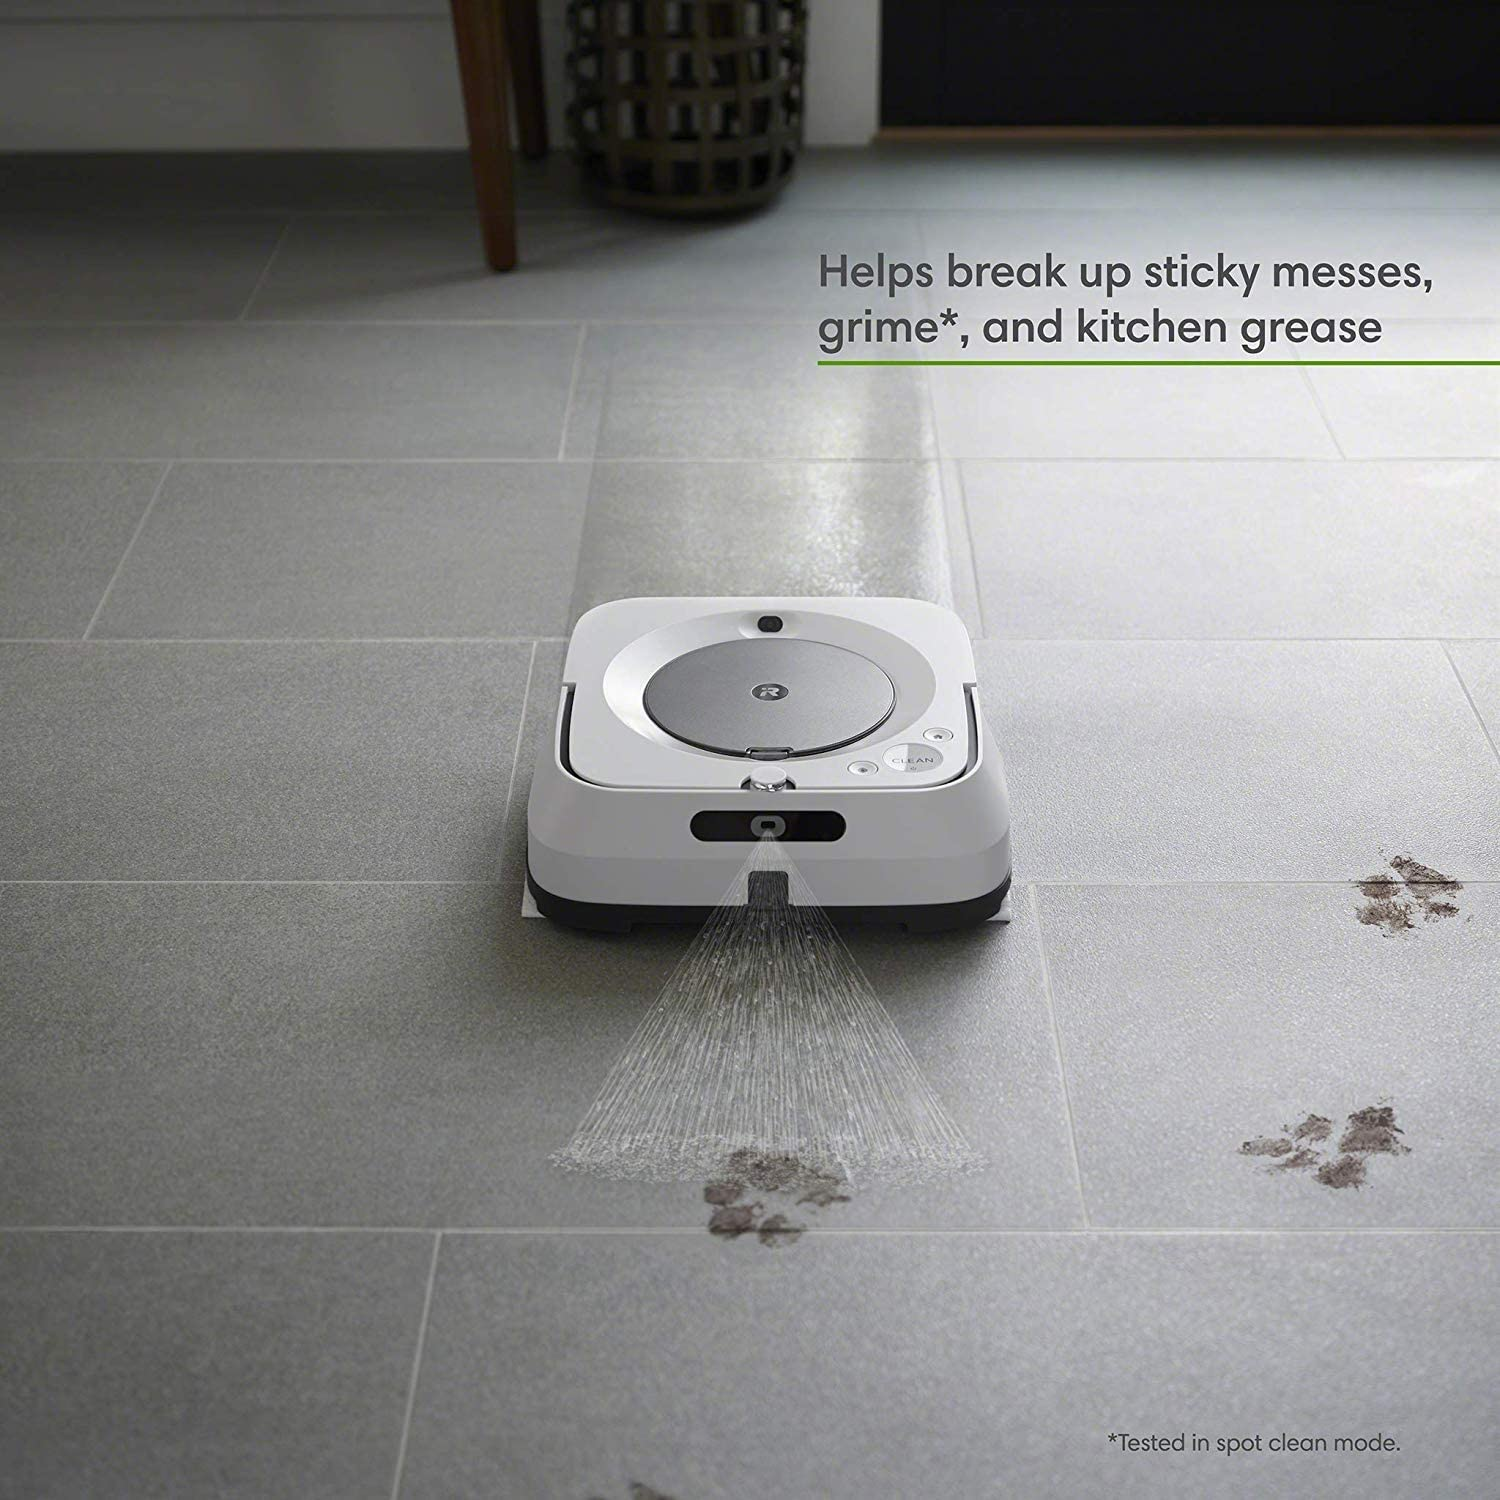 6110 +7 Extra Dry Sweeping Pads Works with Alexa iRobot Braava Jet m6 Recharges and Resumes Precision Jet Spray Ideal for Multiple Rooms Ultimate Robot Mop- Wi-Fi Connected Smart Mapping